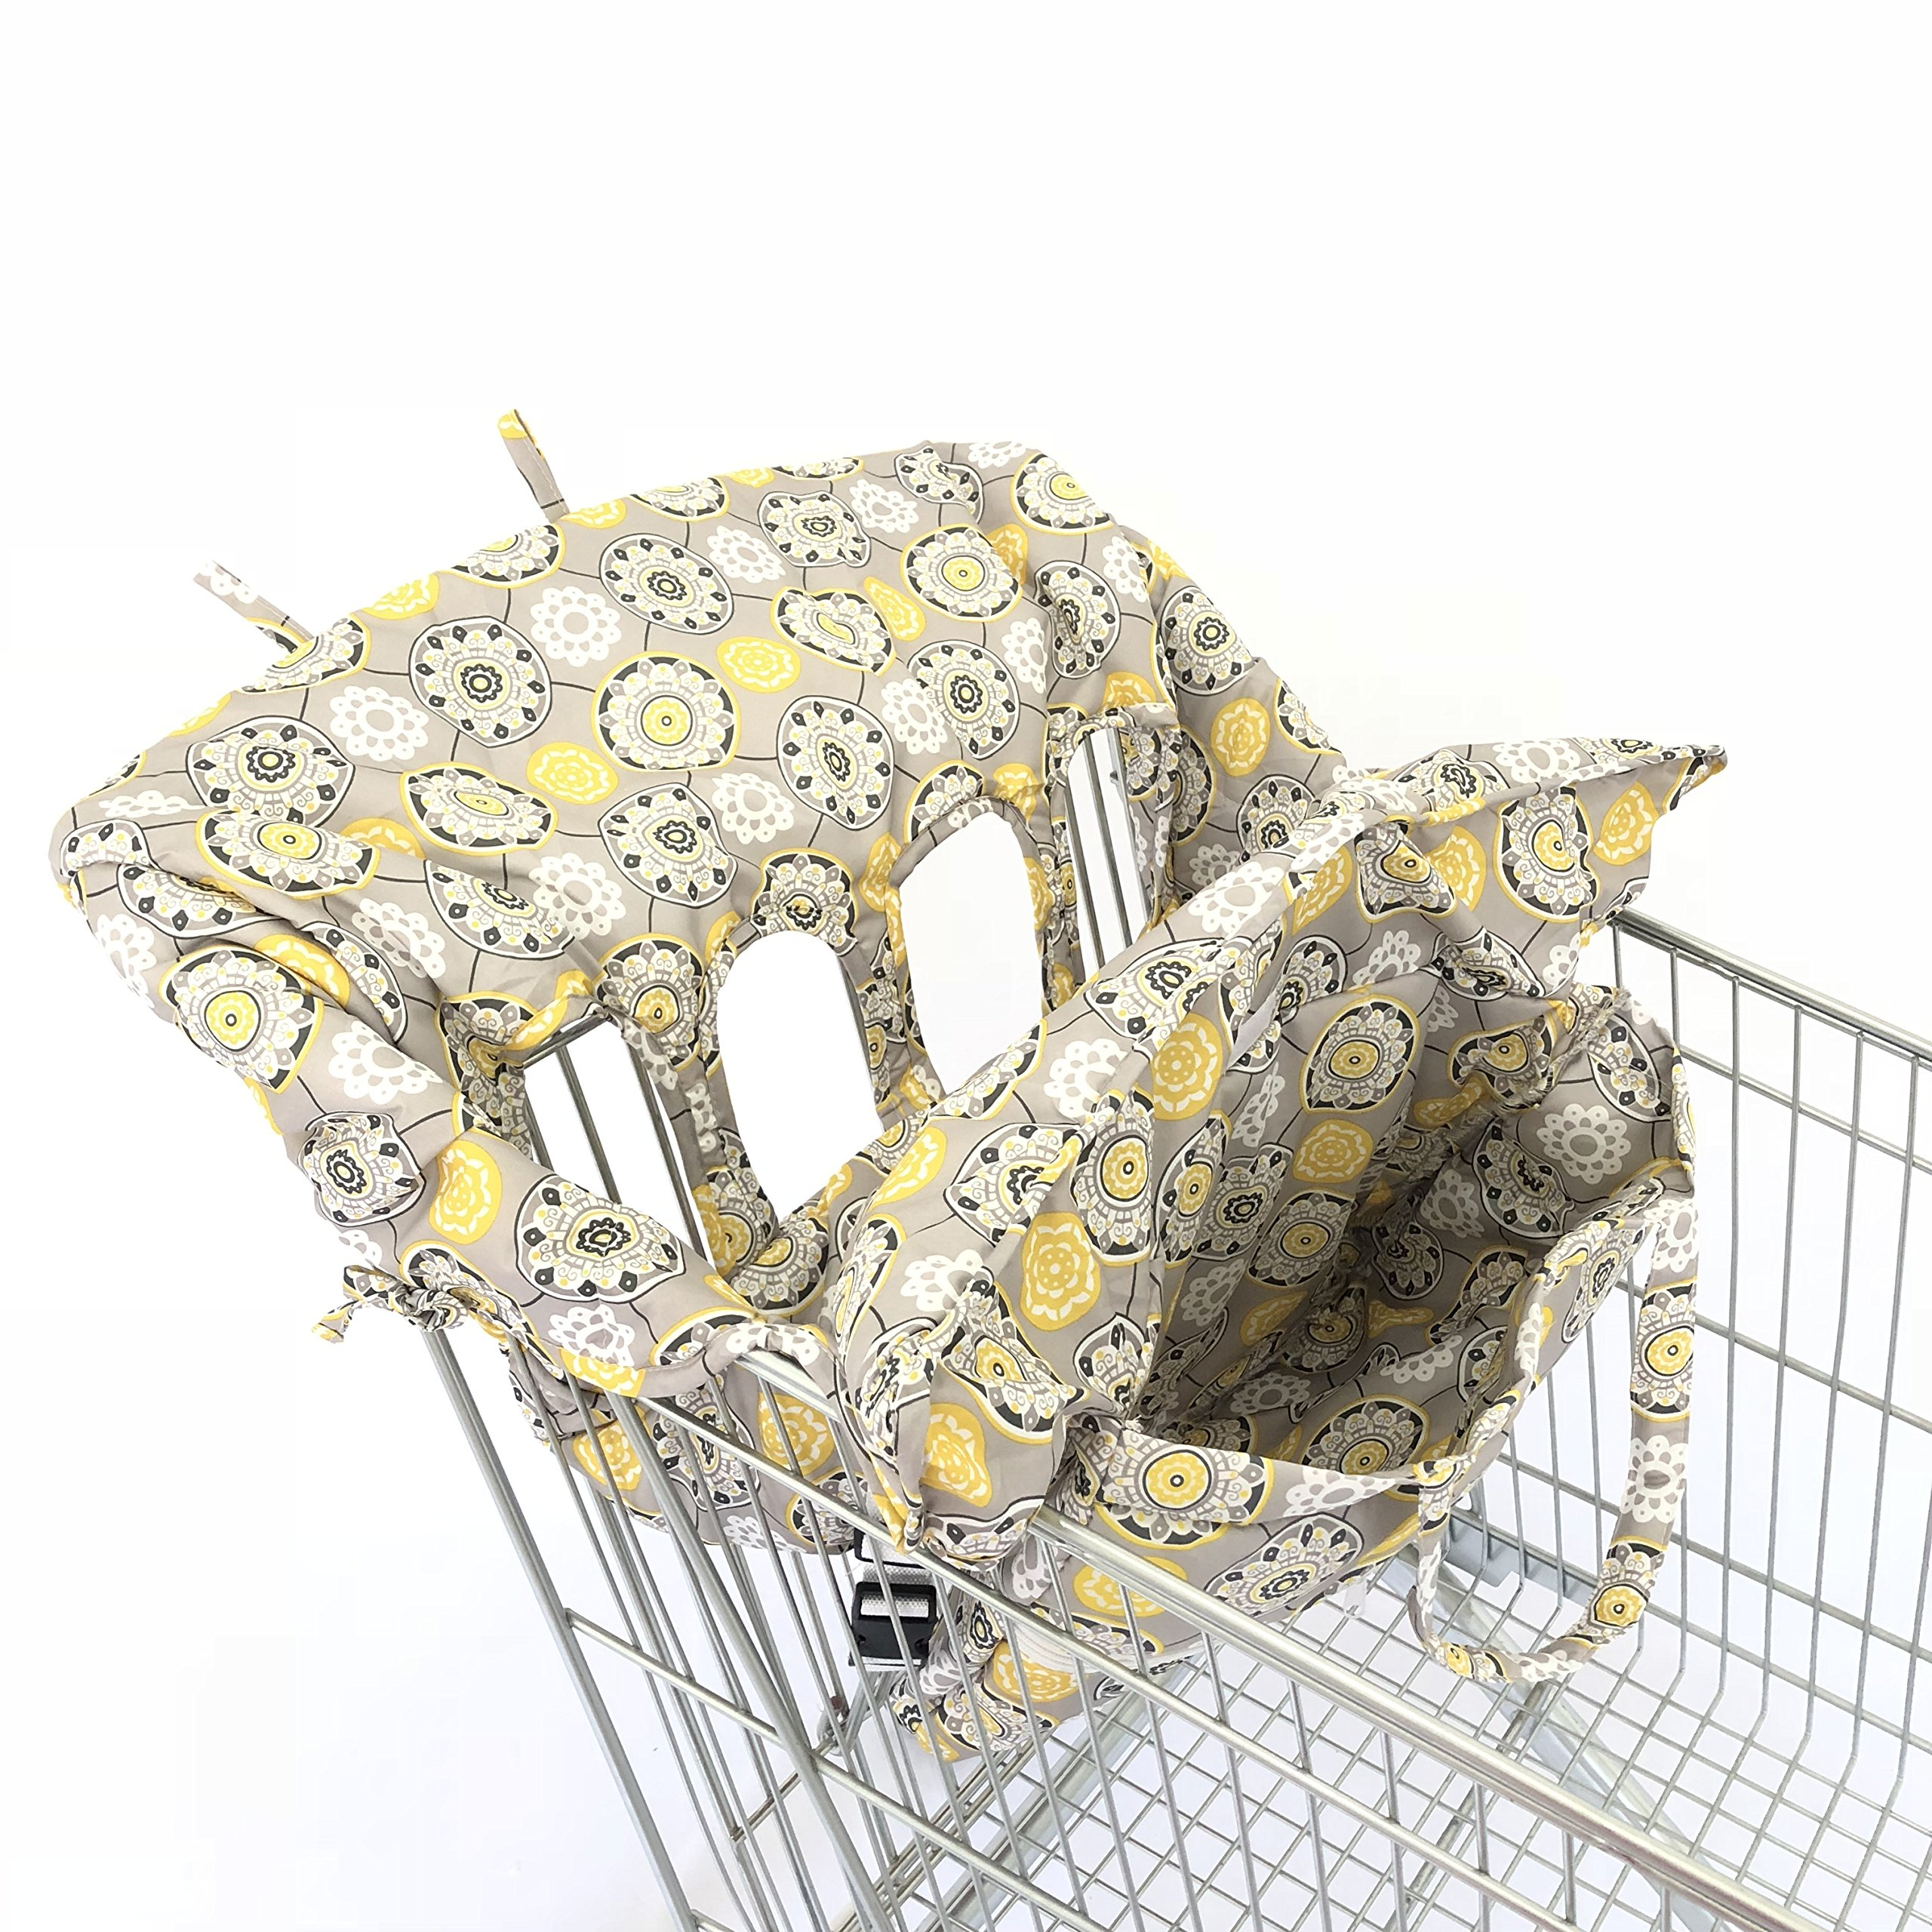 SEALOVESFLOWER 4 Leg Holes X-LARGE Size With Elastric Yellow Flower Cushion For Twin Double Shopping Cart Cover for Baby Siblings which can be folded into one sling bag